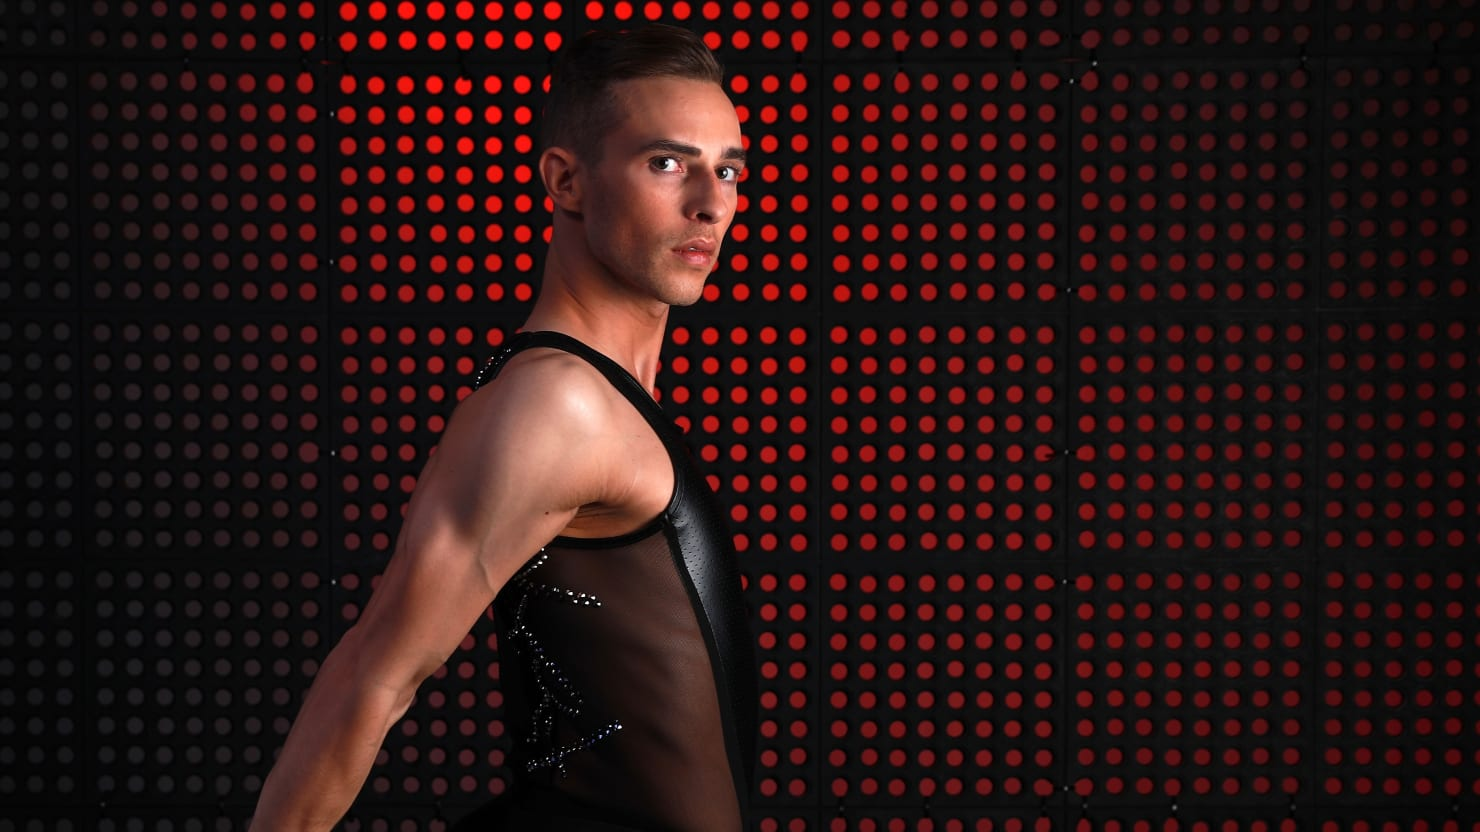 adam rippon team usa saturday night live ice skating snl host men mens gay figure skating